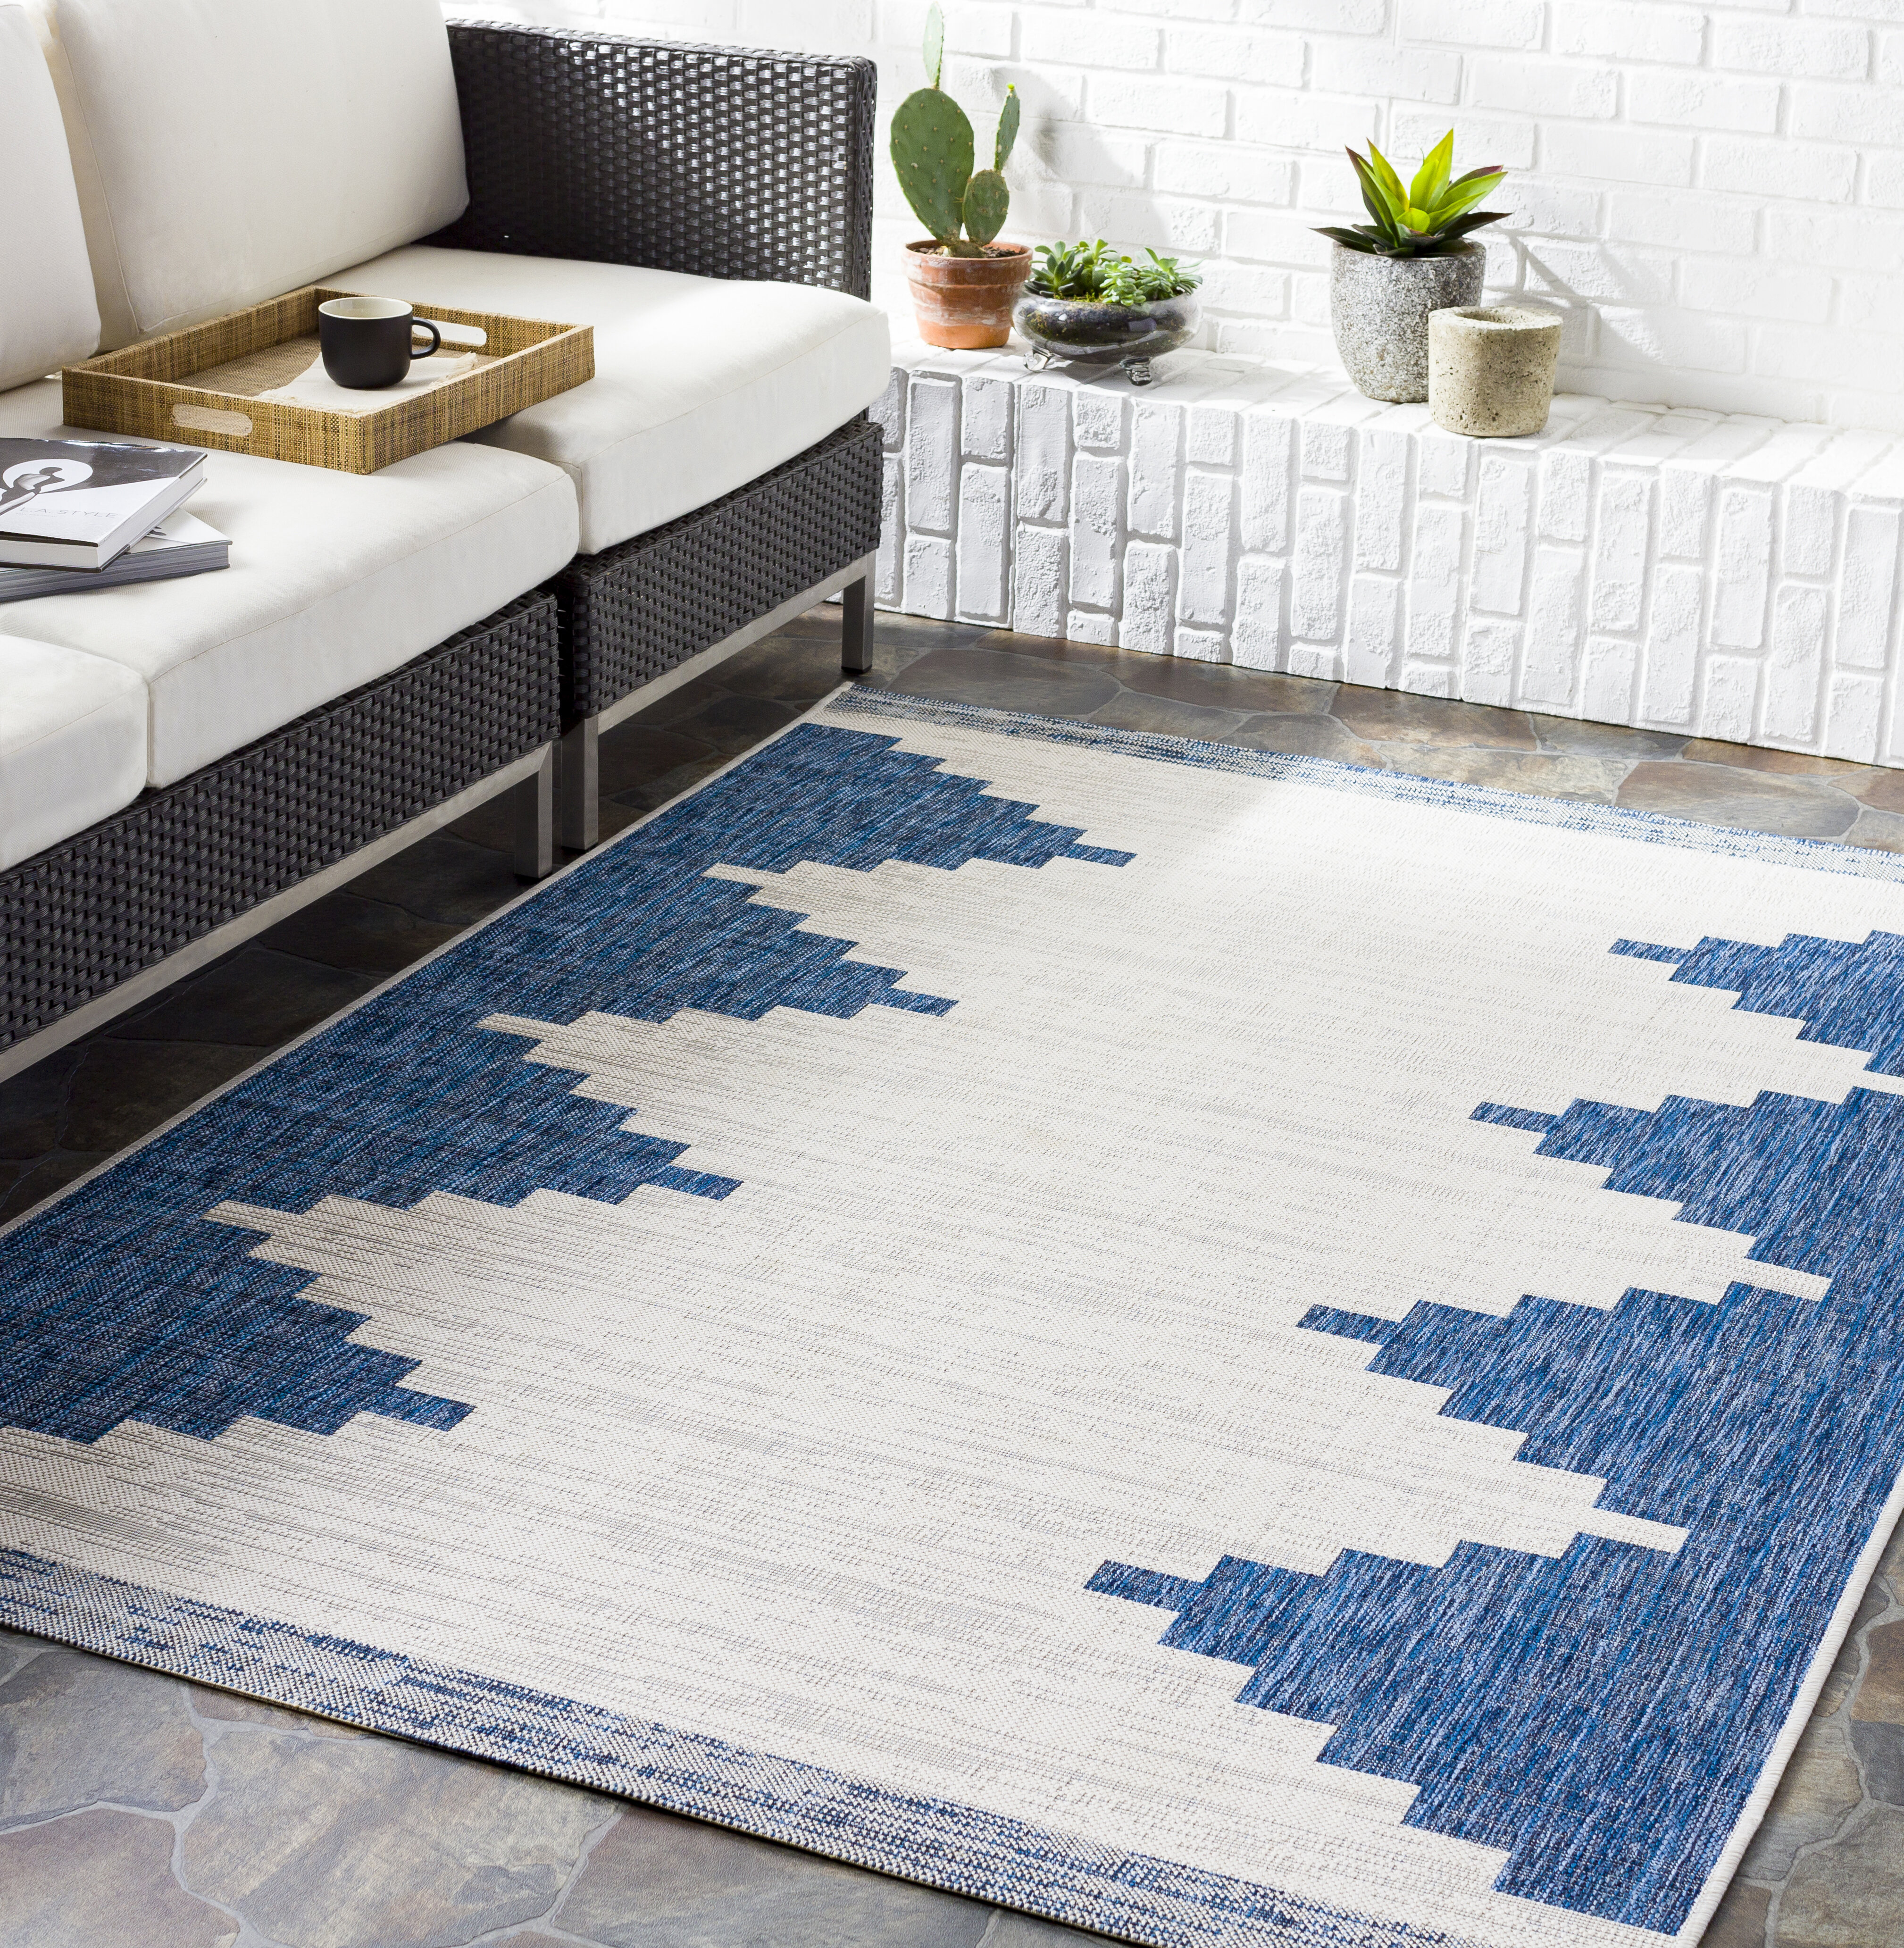 Foundry Select Kailyn Southwestern Bright Blue Beige Indoor Outdoor Area Rug Reviews Wayfair